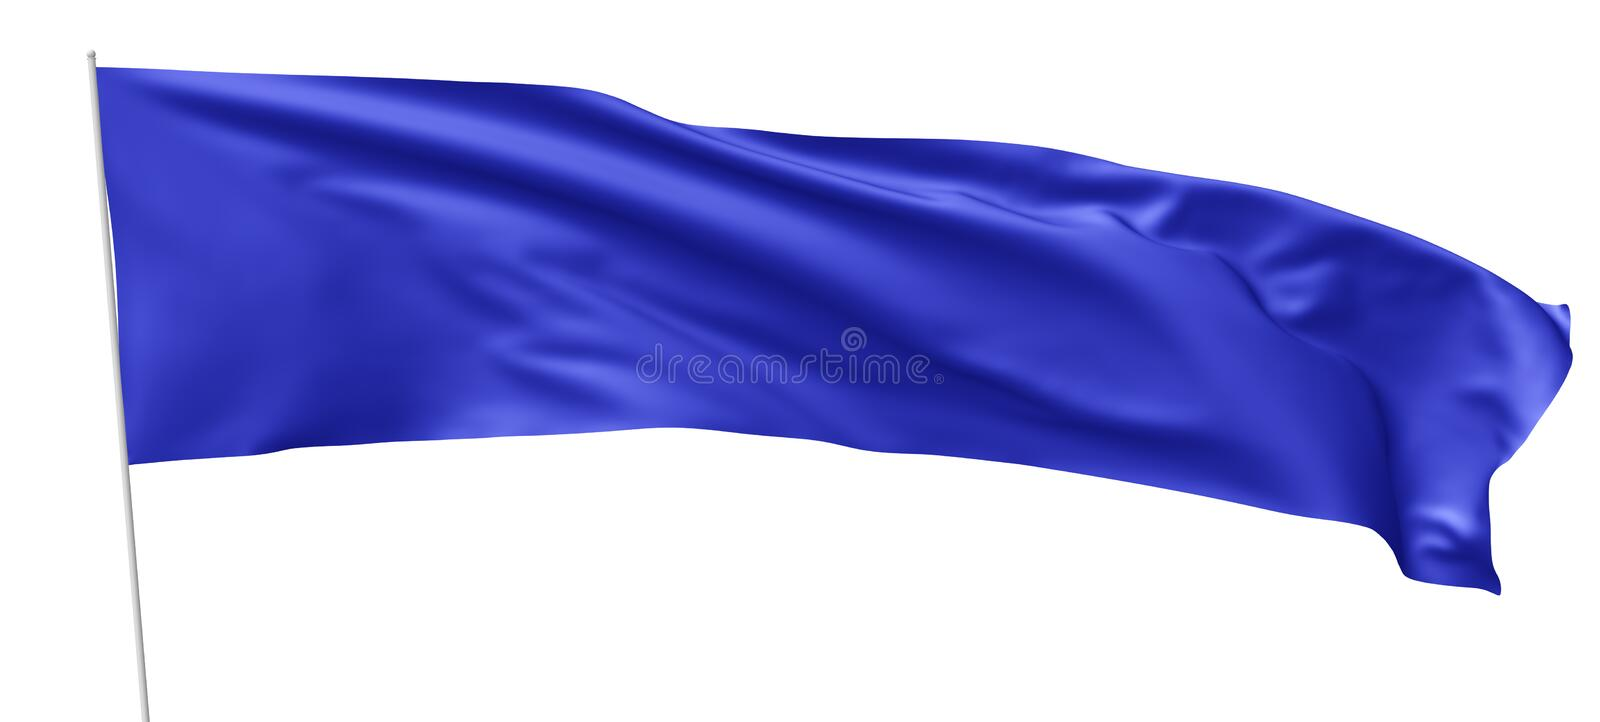 Long blue flag with flagpole waving in wind royalty free illustration